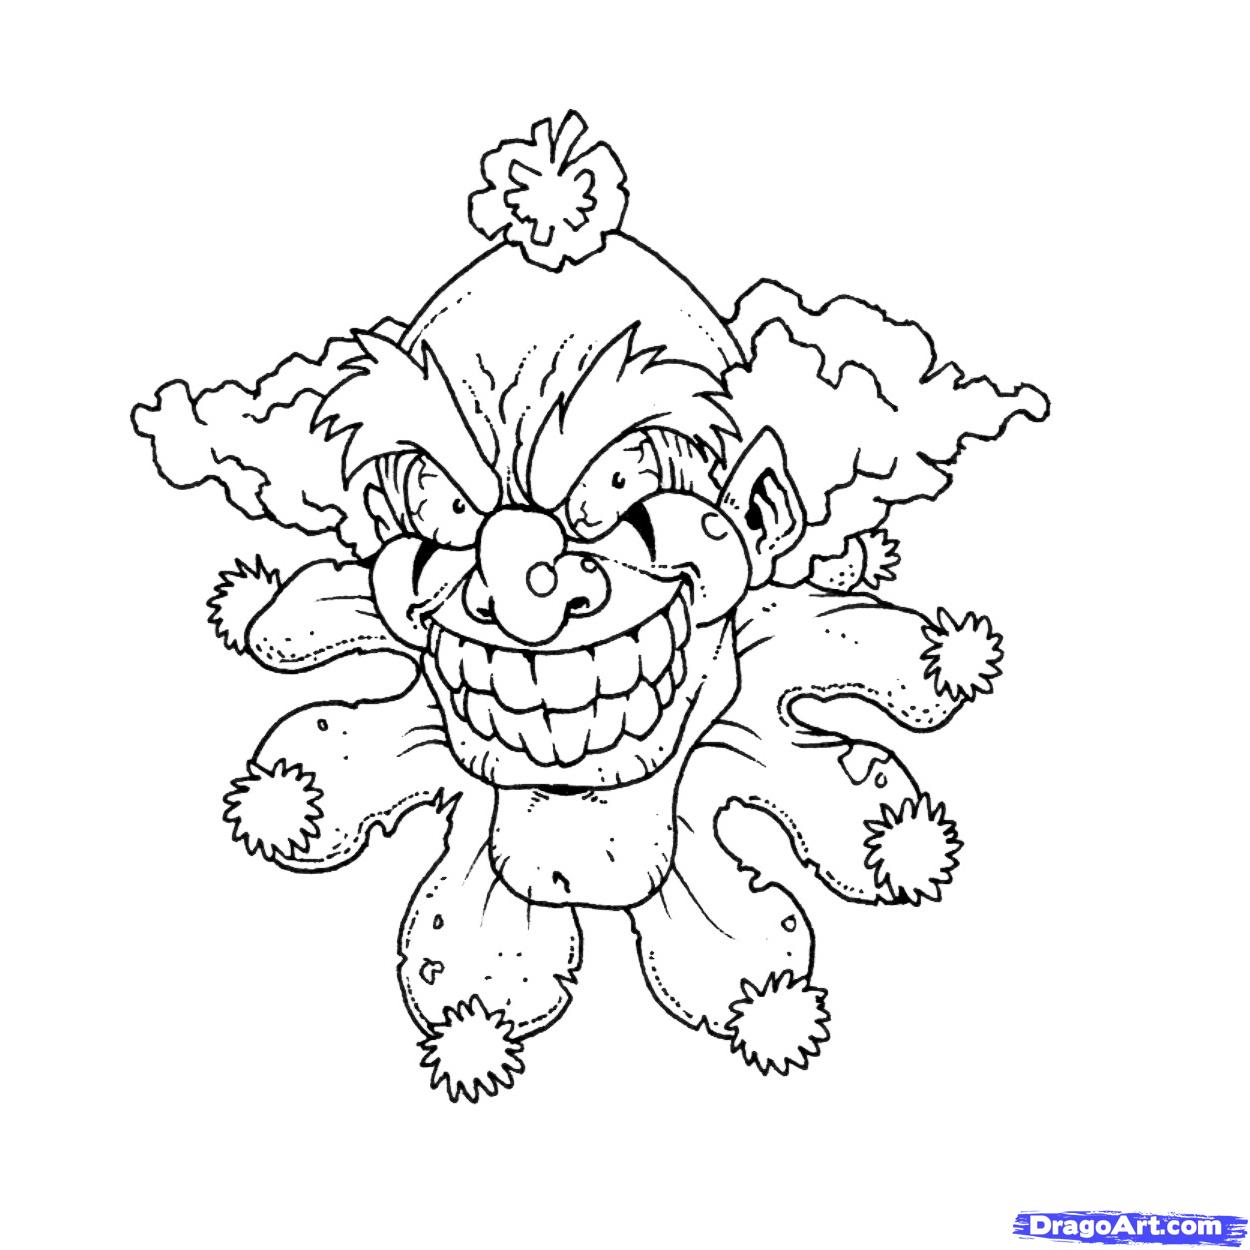 1250x1250 Delivered Clown Coloring Pages For Adults Sheet Roi